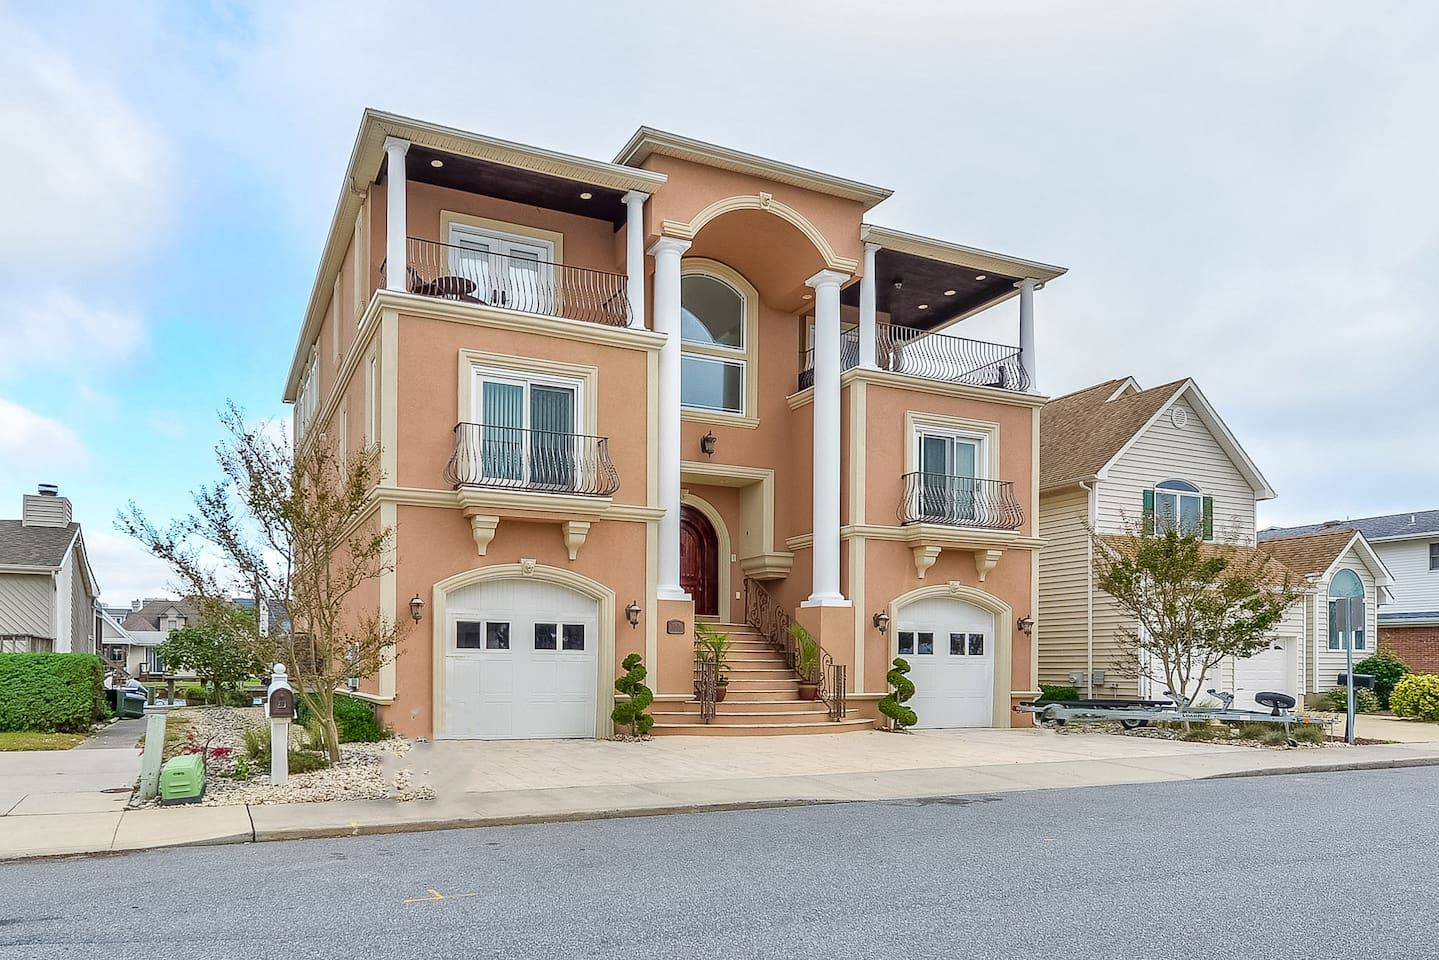 Casa Del Mar Houses For Rent In Ocean City Maryland United States Renting A House Ocean City Beach House Styles